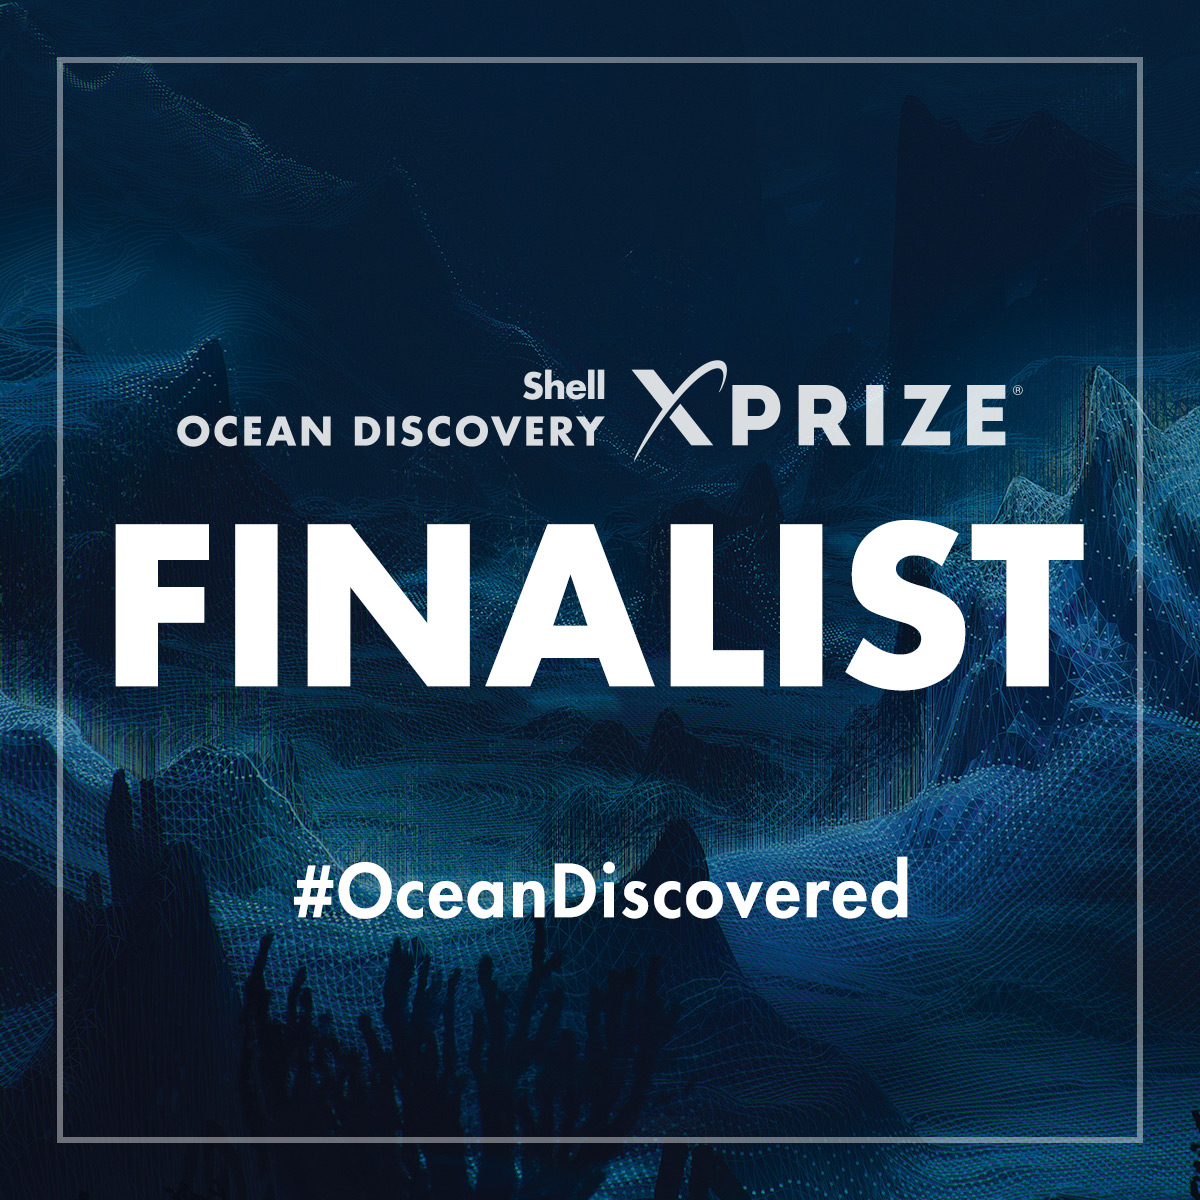 Shell Ocean Discovery XPRIZE graphic